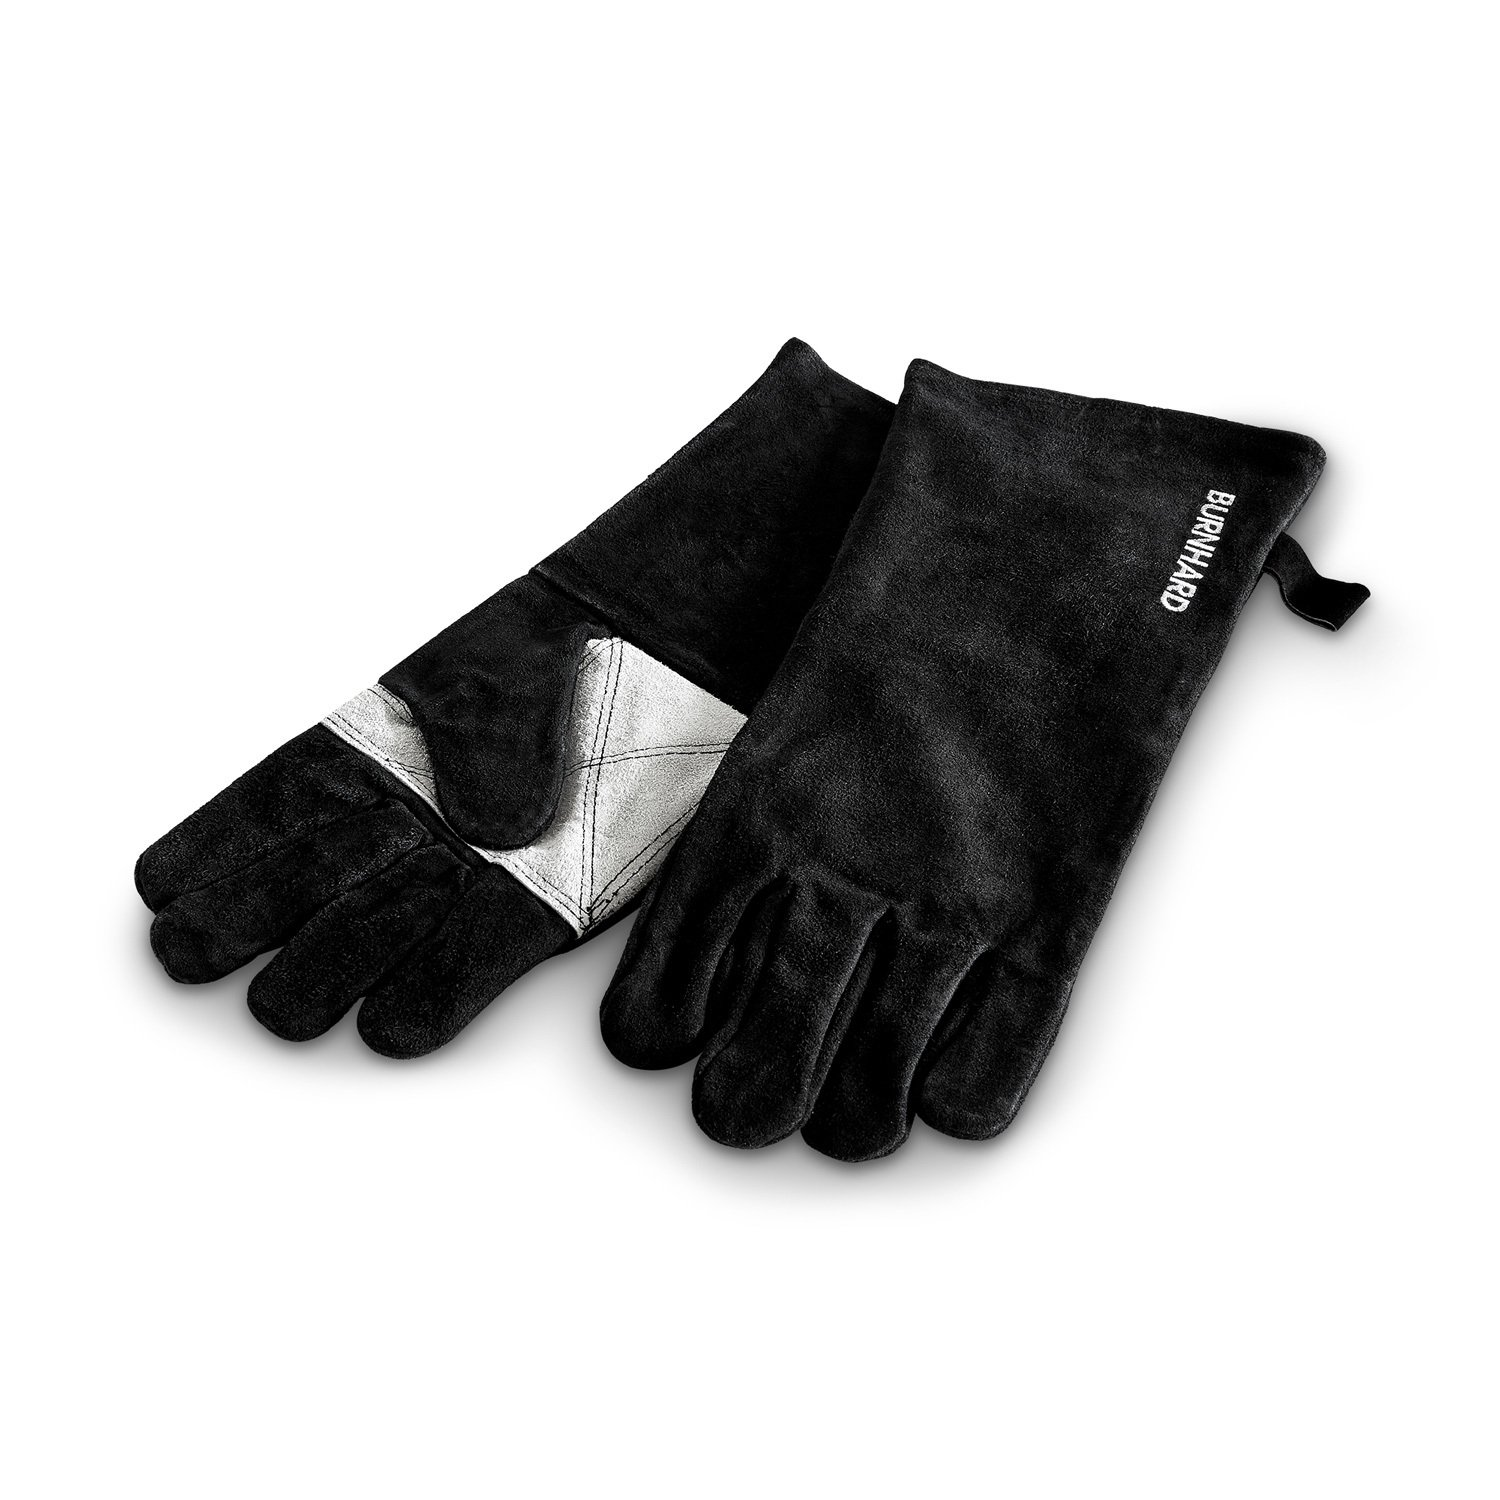 BURNHARD Professional leather barbecue gloves extremely heat-resistant BBQ five-finger gloves in universal size with double leather padding and forearm protection